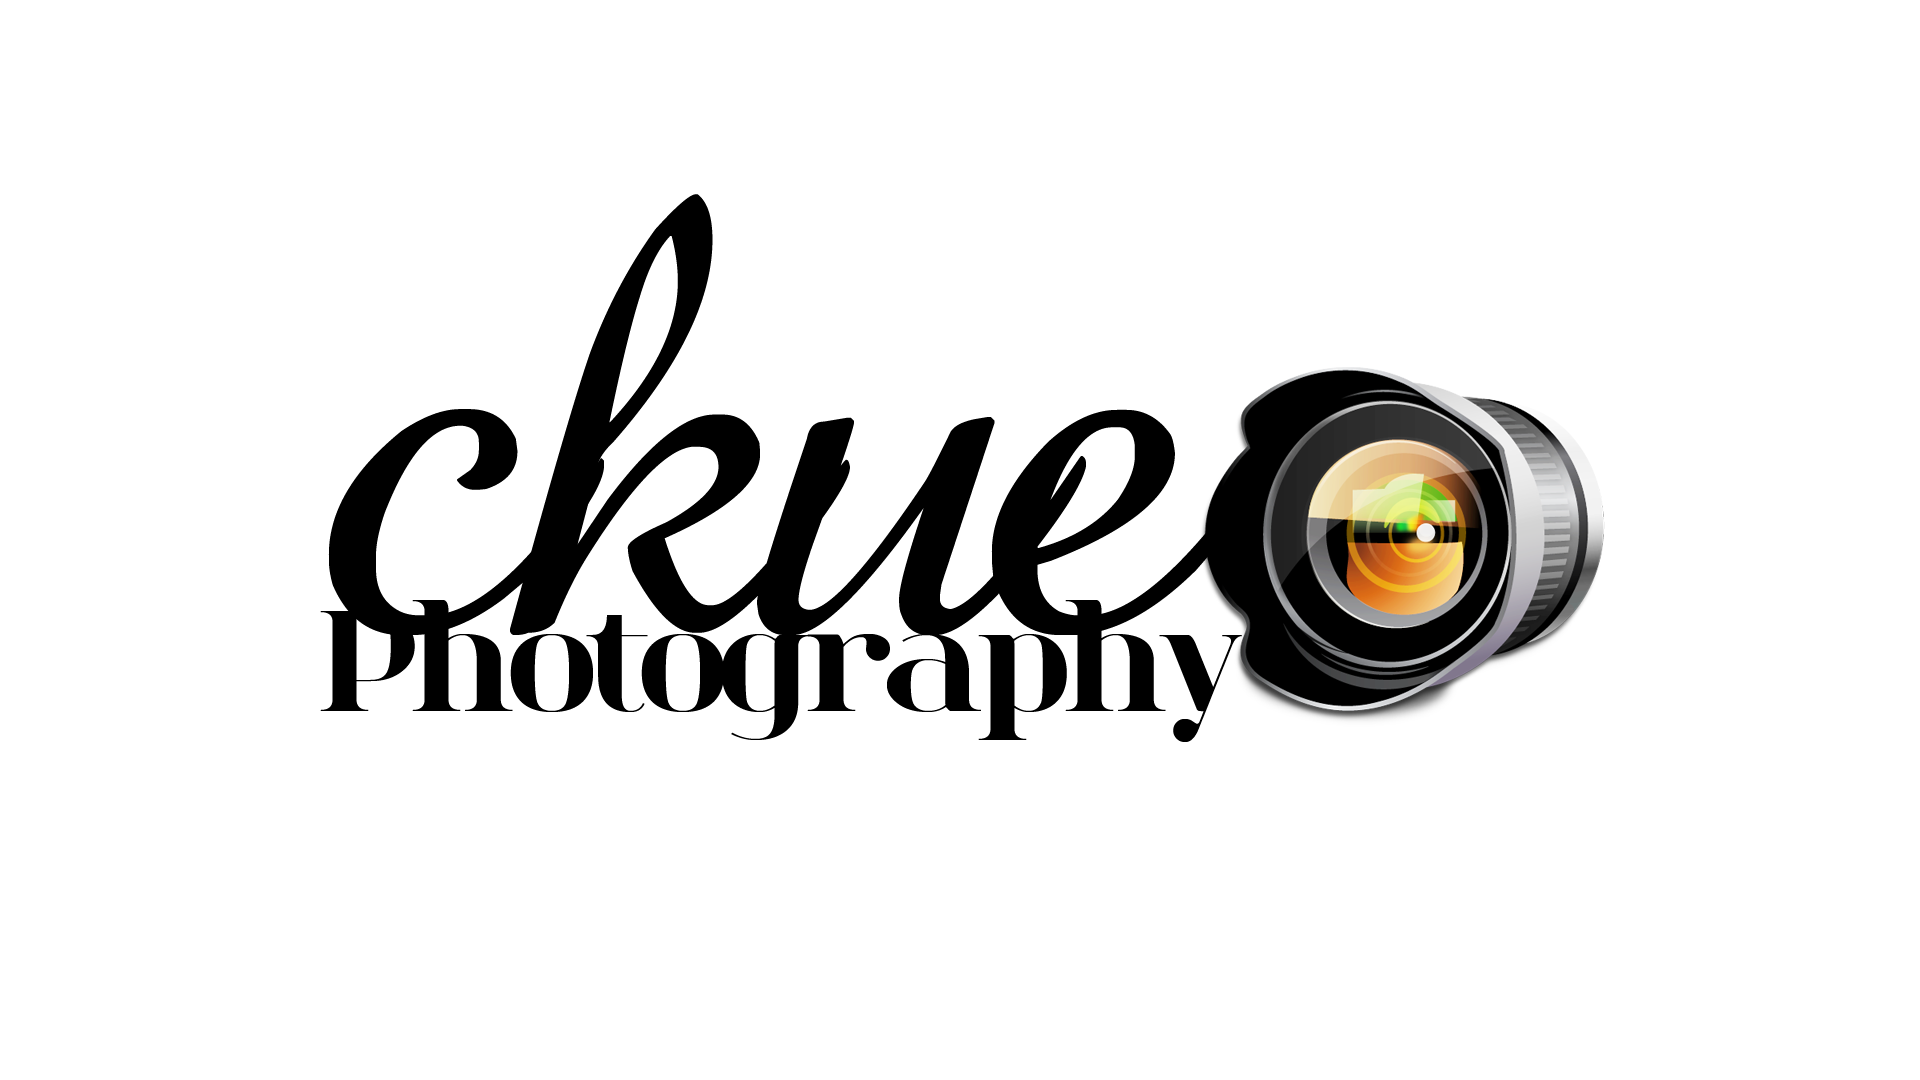 CK_Photography_Logo_4_by_blissBOT.png (1920×1080